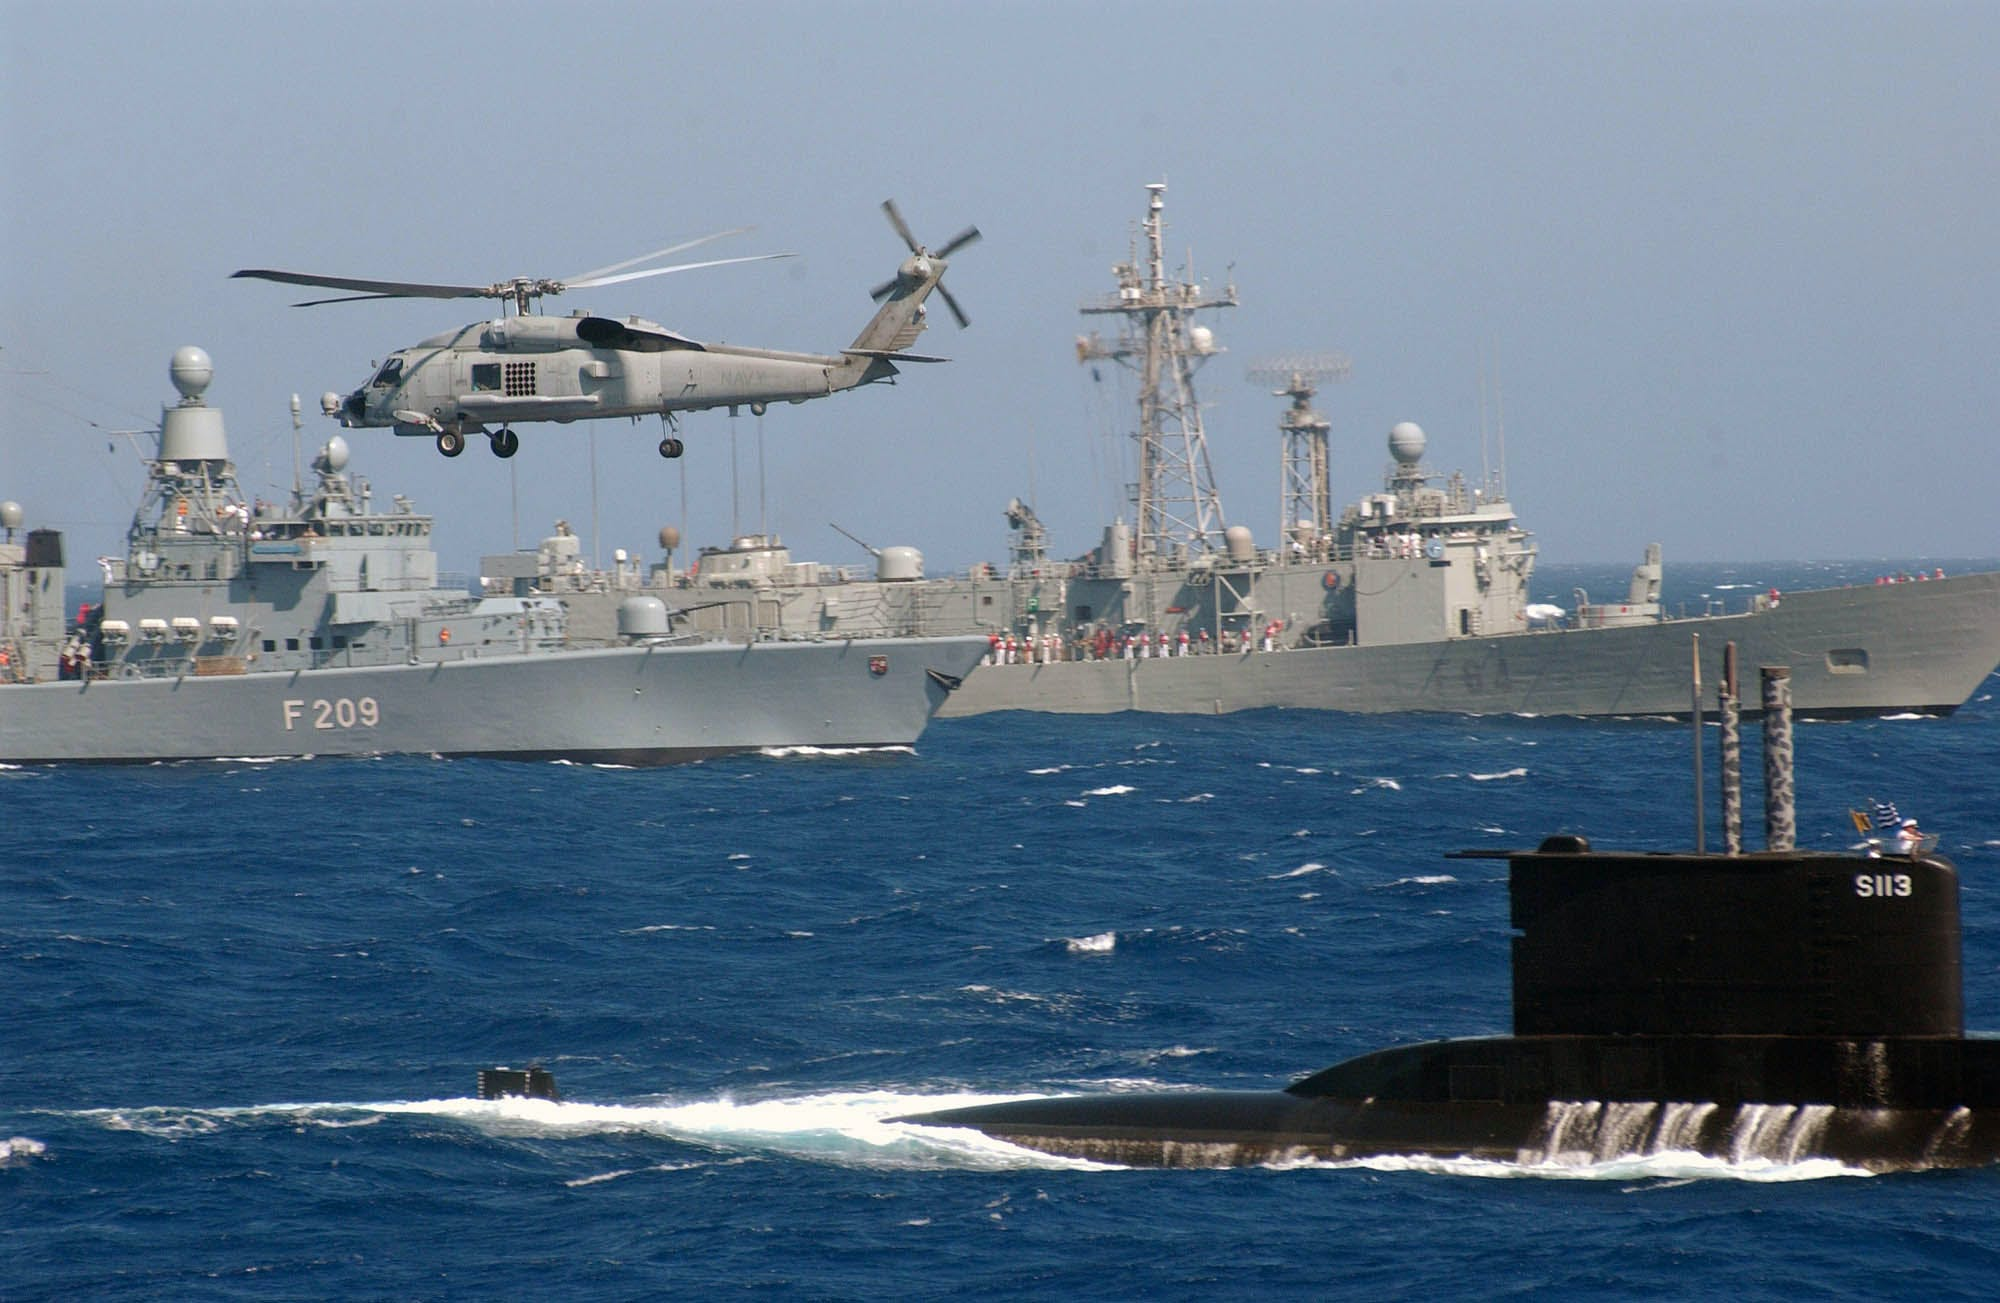 NATO ships conduct advanced training in Eastern Mediterranean